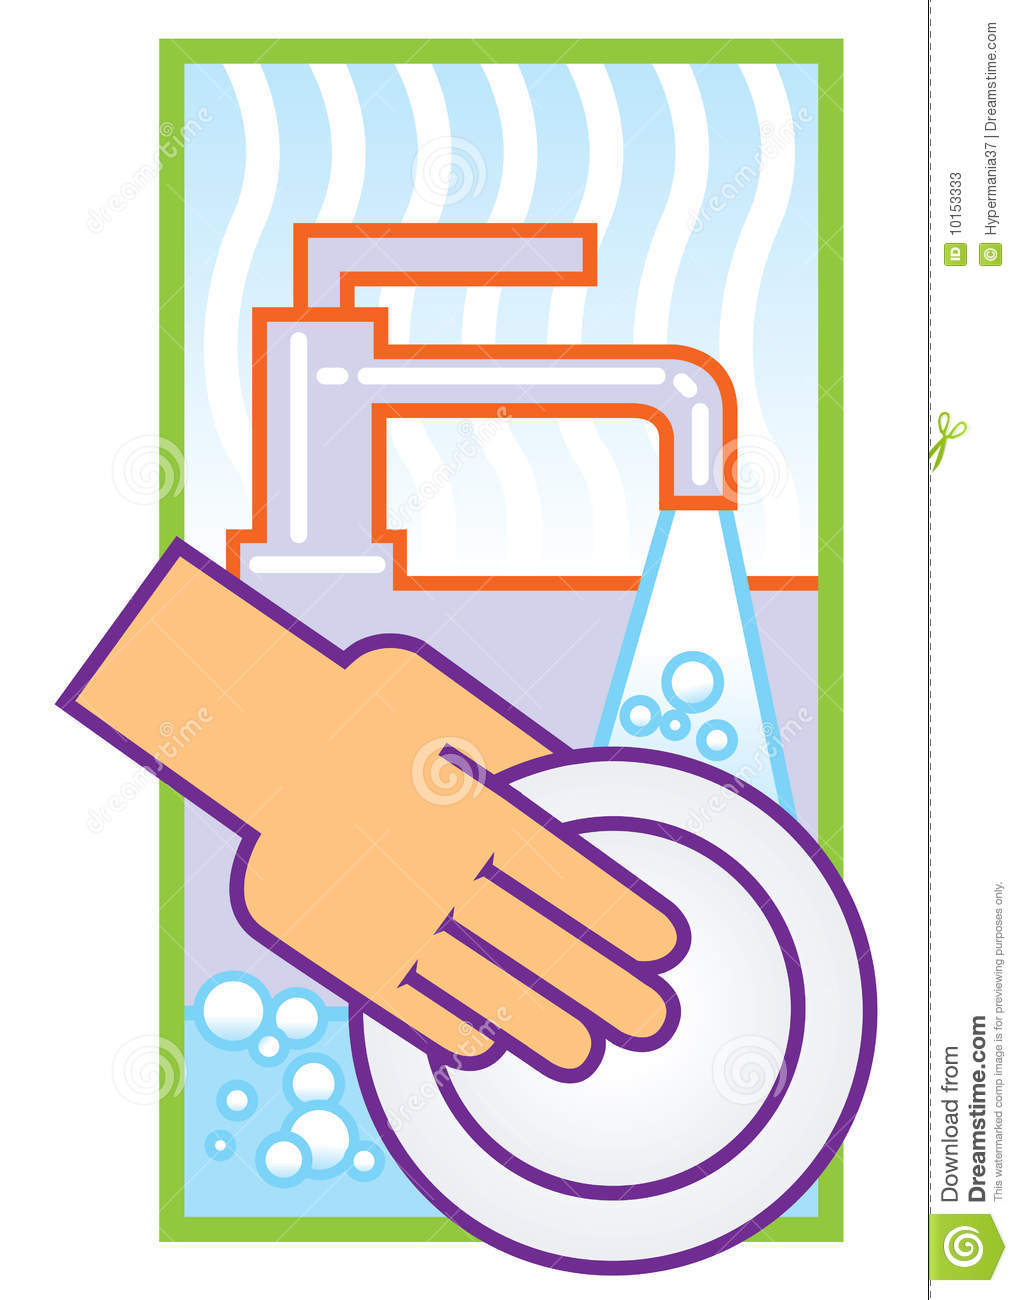 Washing dishes by hand clipart svg royalty free library Wash Up Clipart - Clipart Kid svg royalty free library